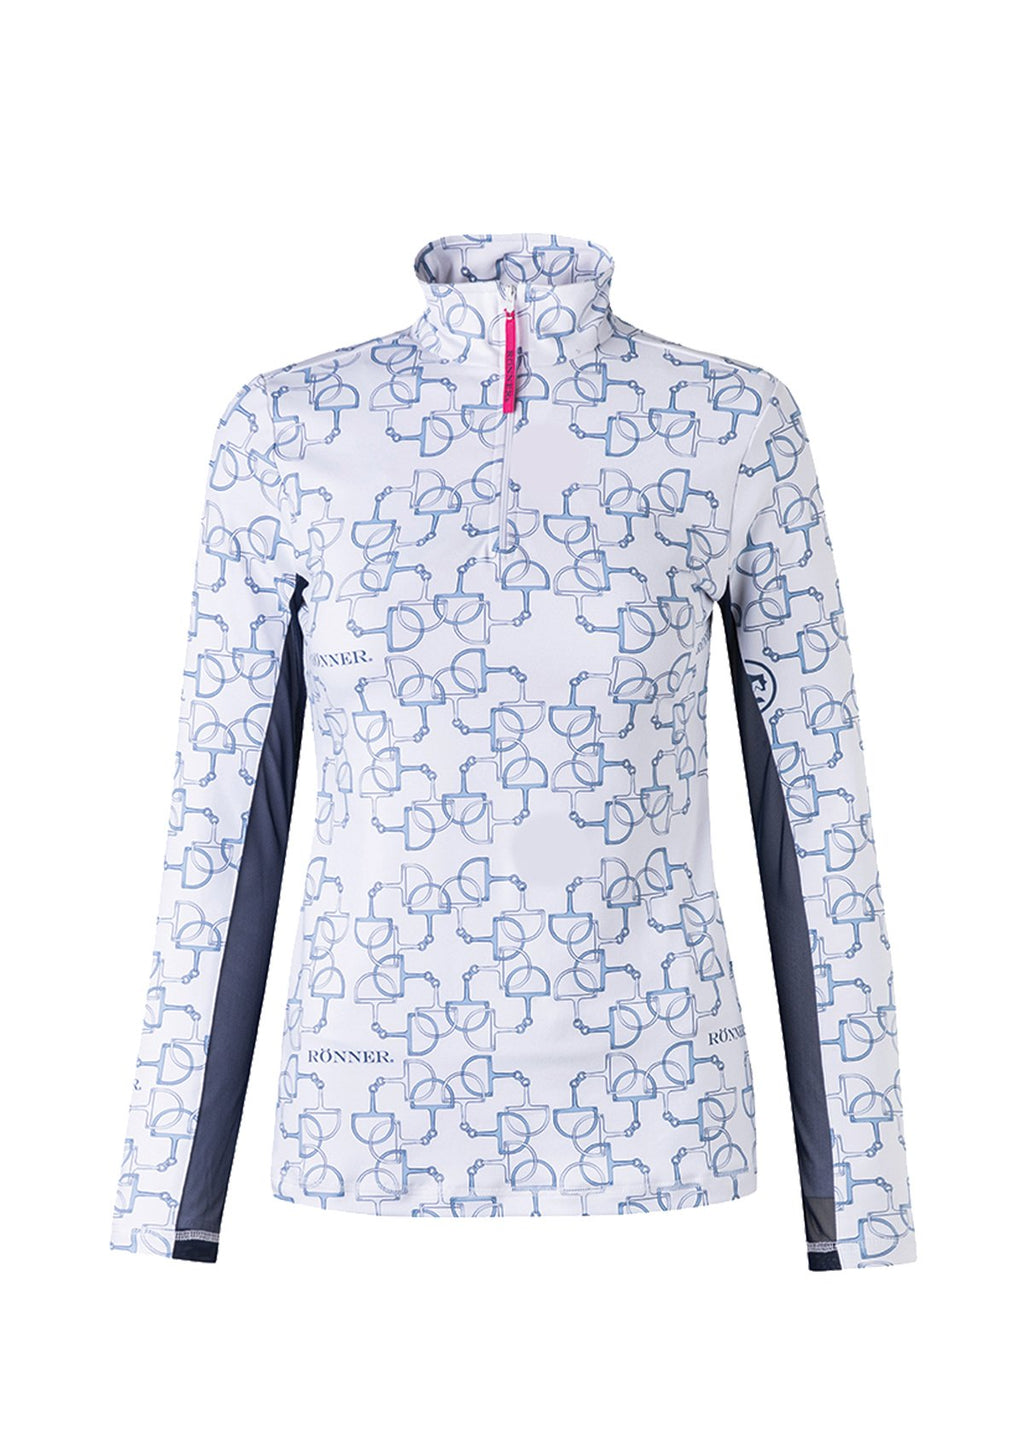 Campeona Sun Shirt - The Dressage Store